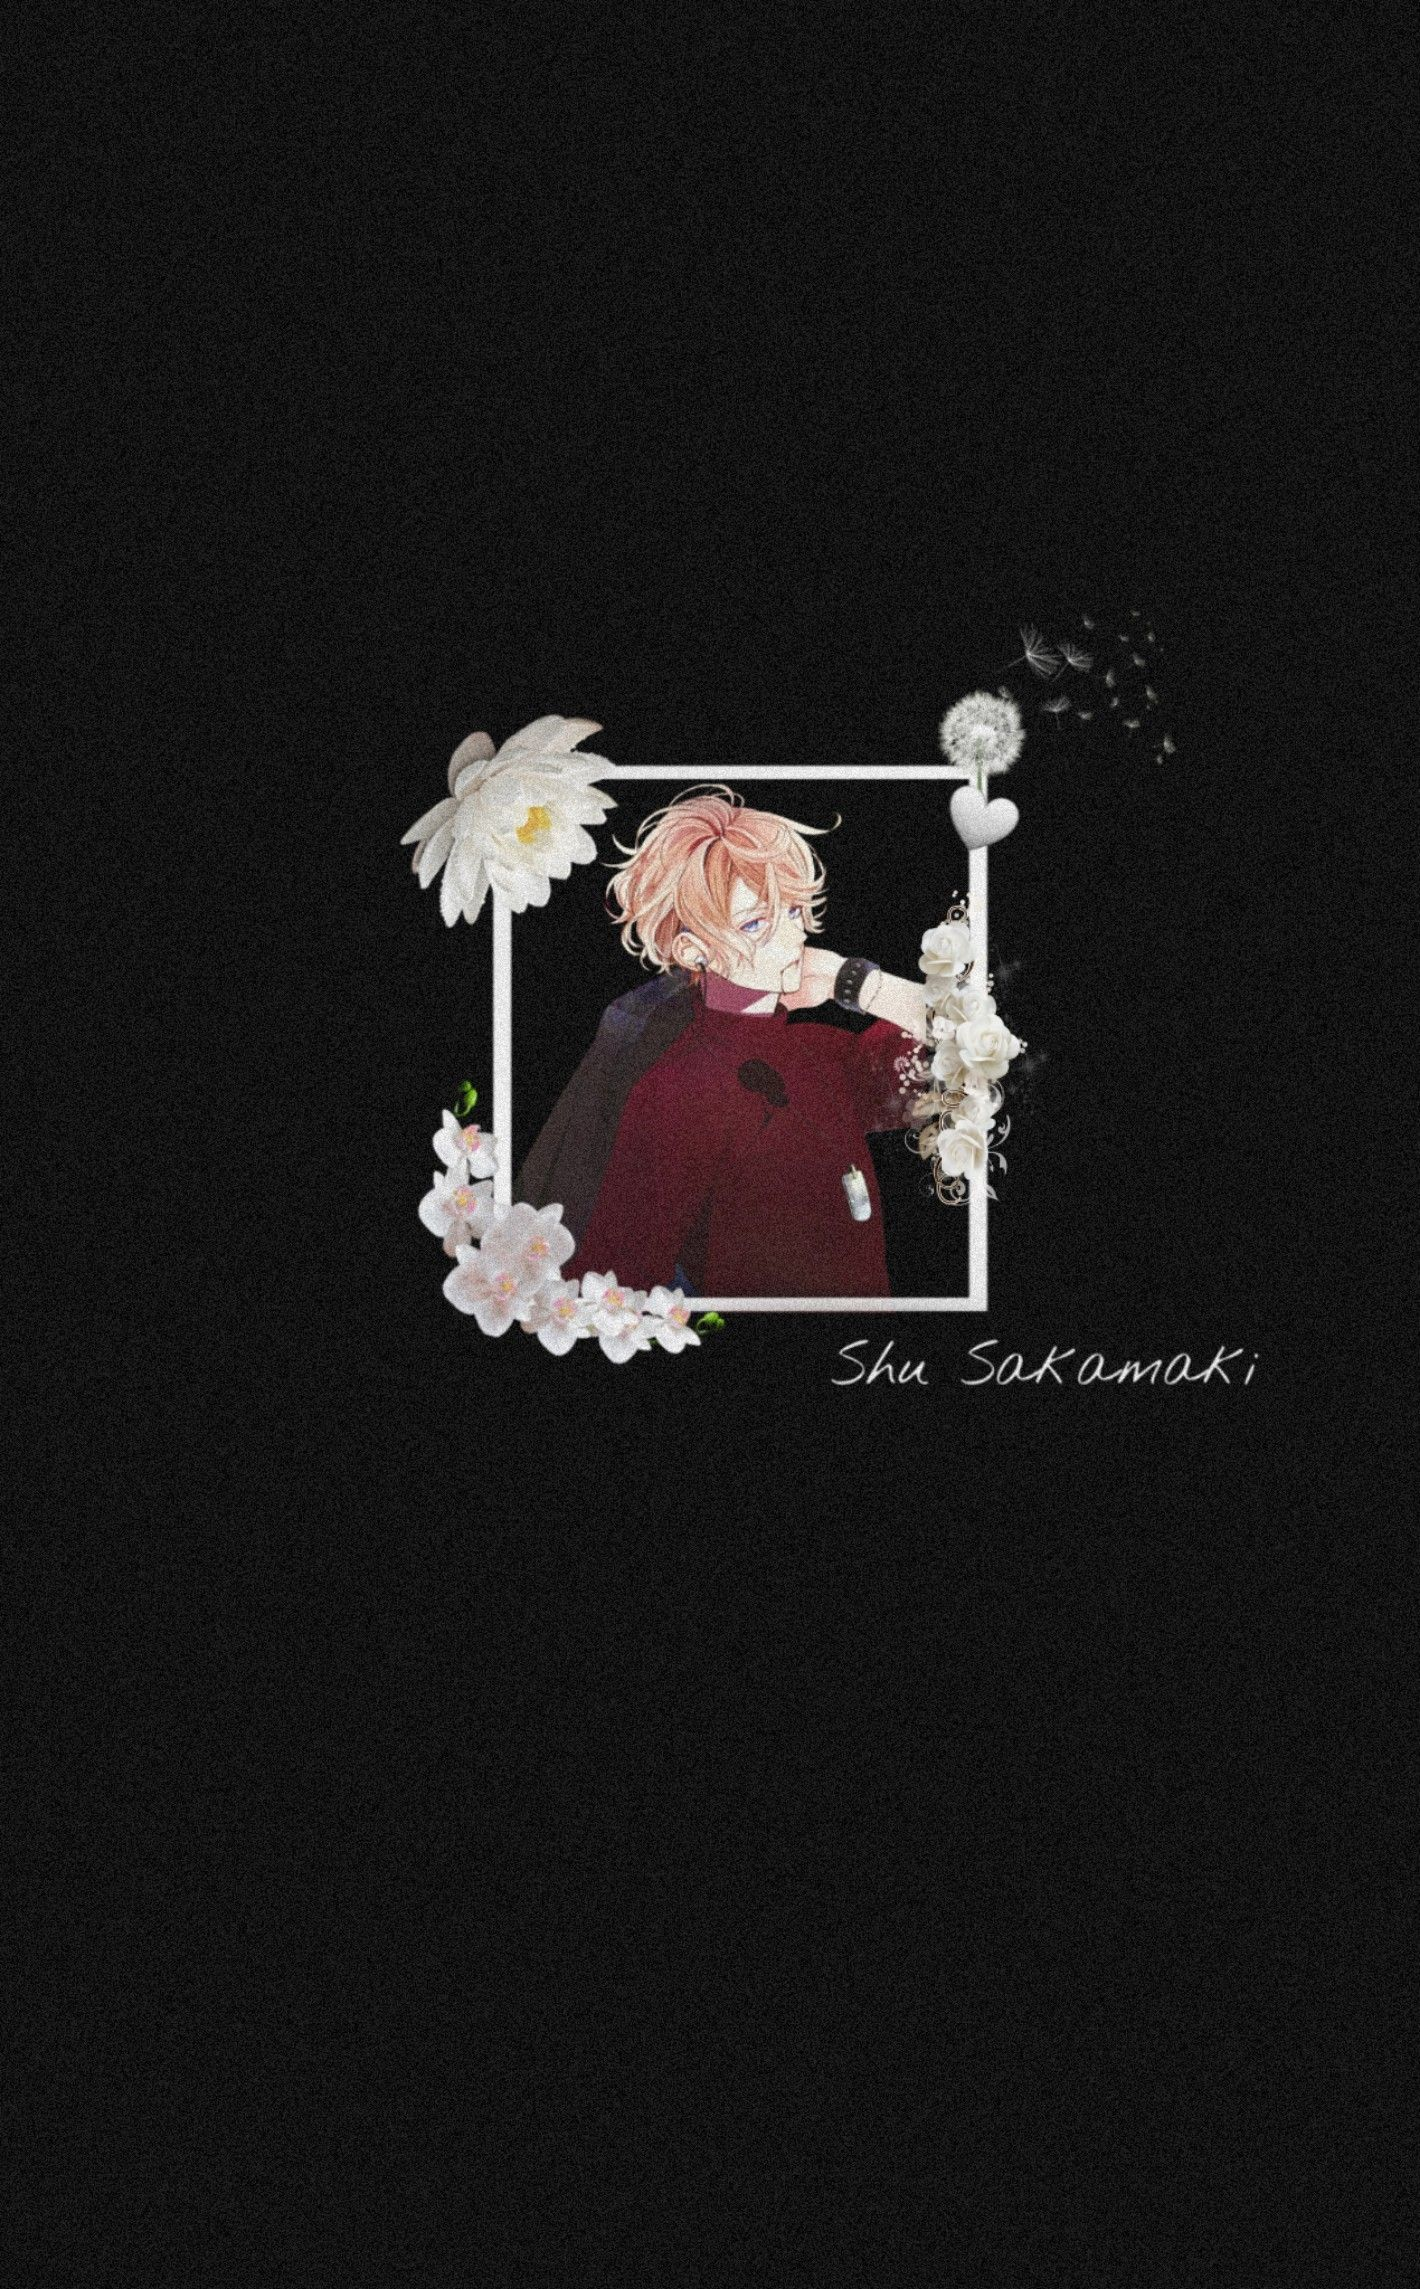 Shu Sakamaki [Diabolik Lovers Wallpaper]- Anime [aesthetic]